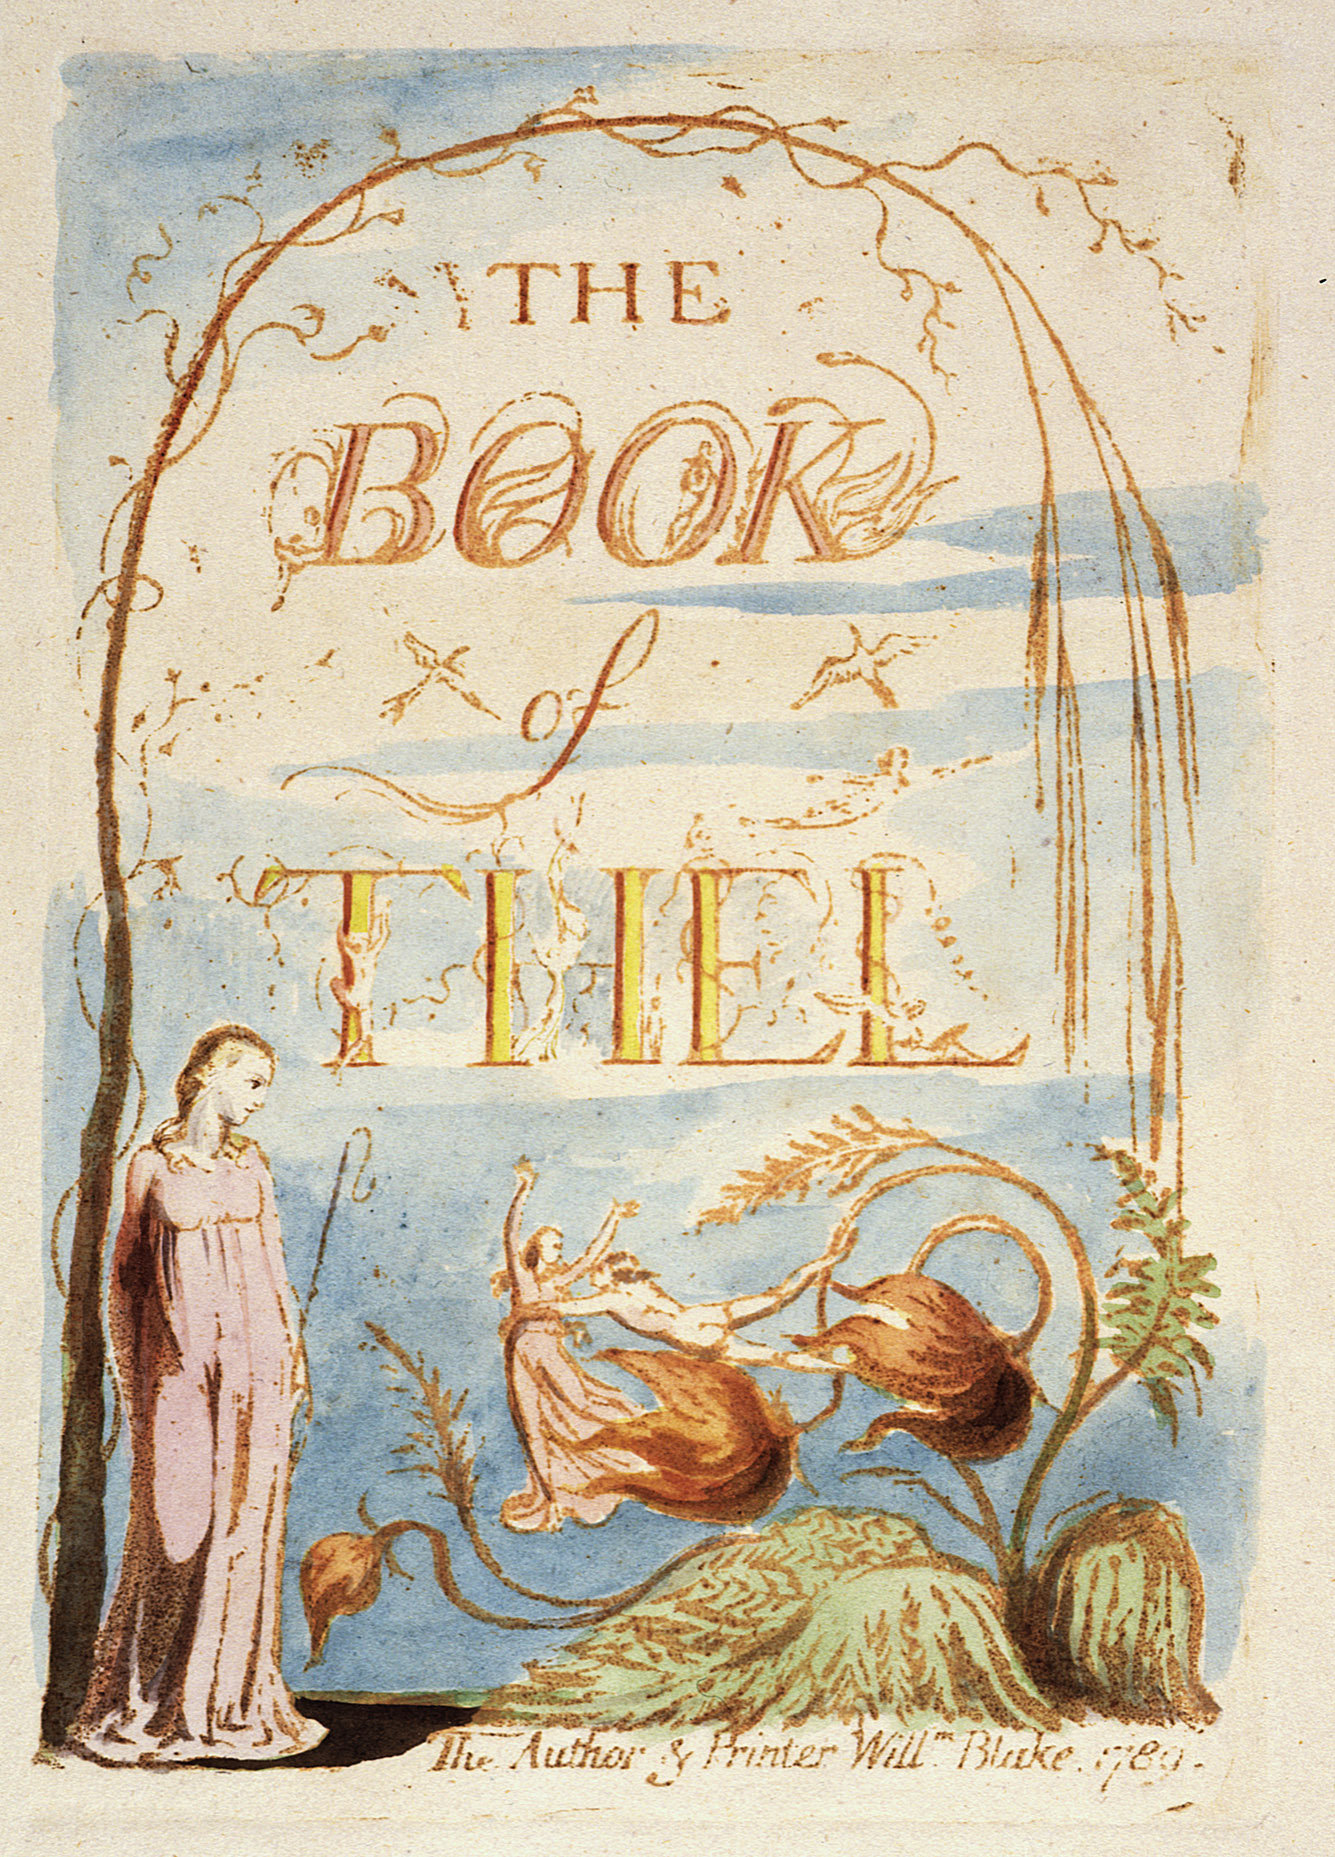 The Book of Thel, copy B, object 2